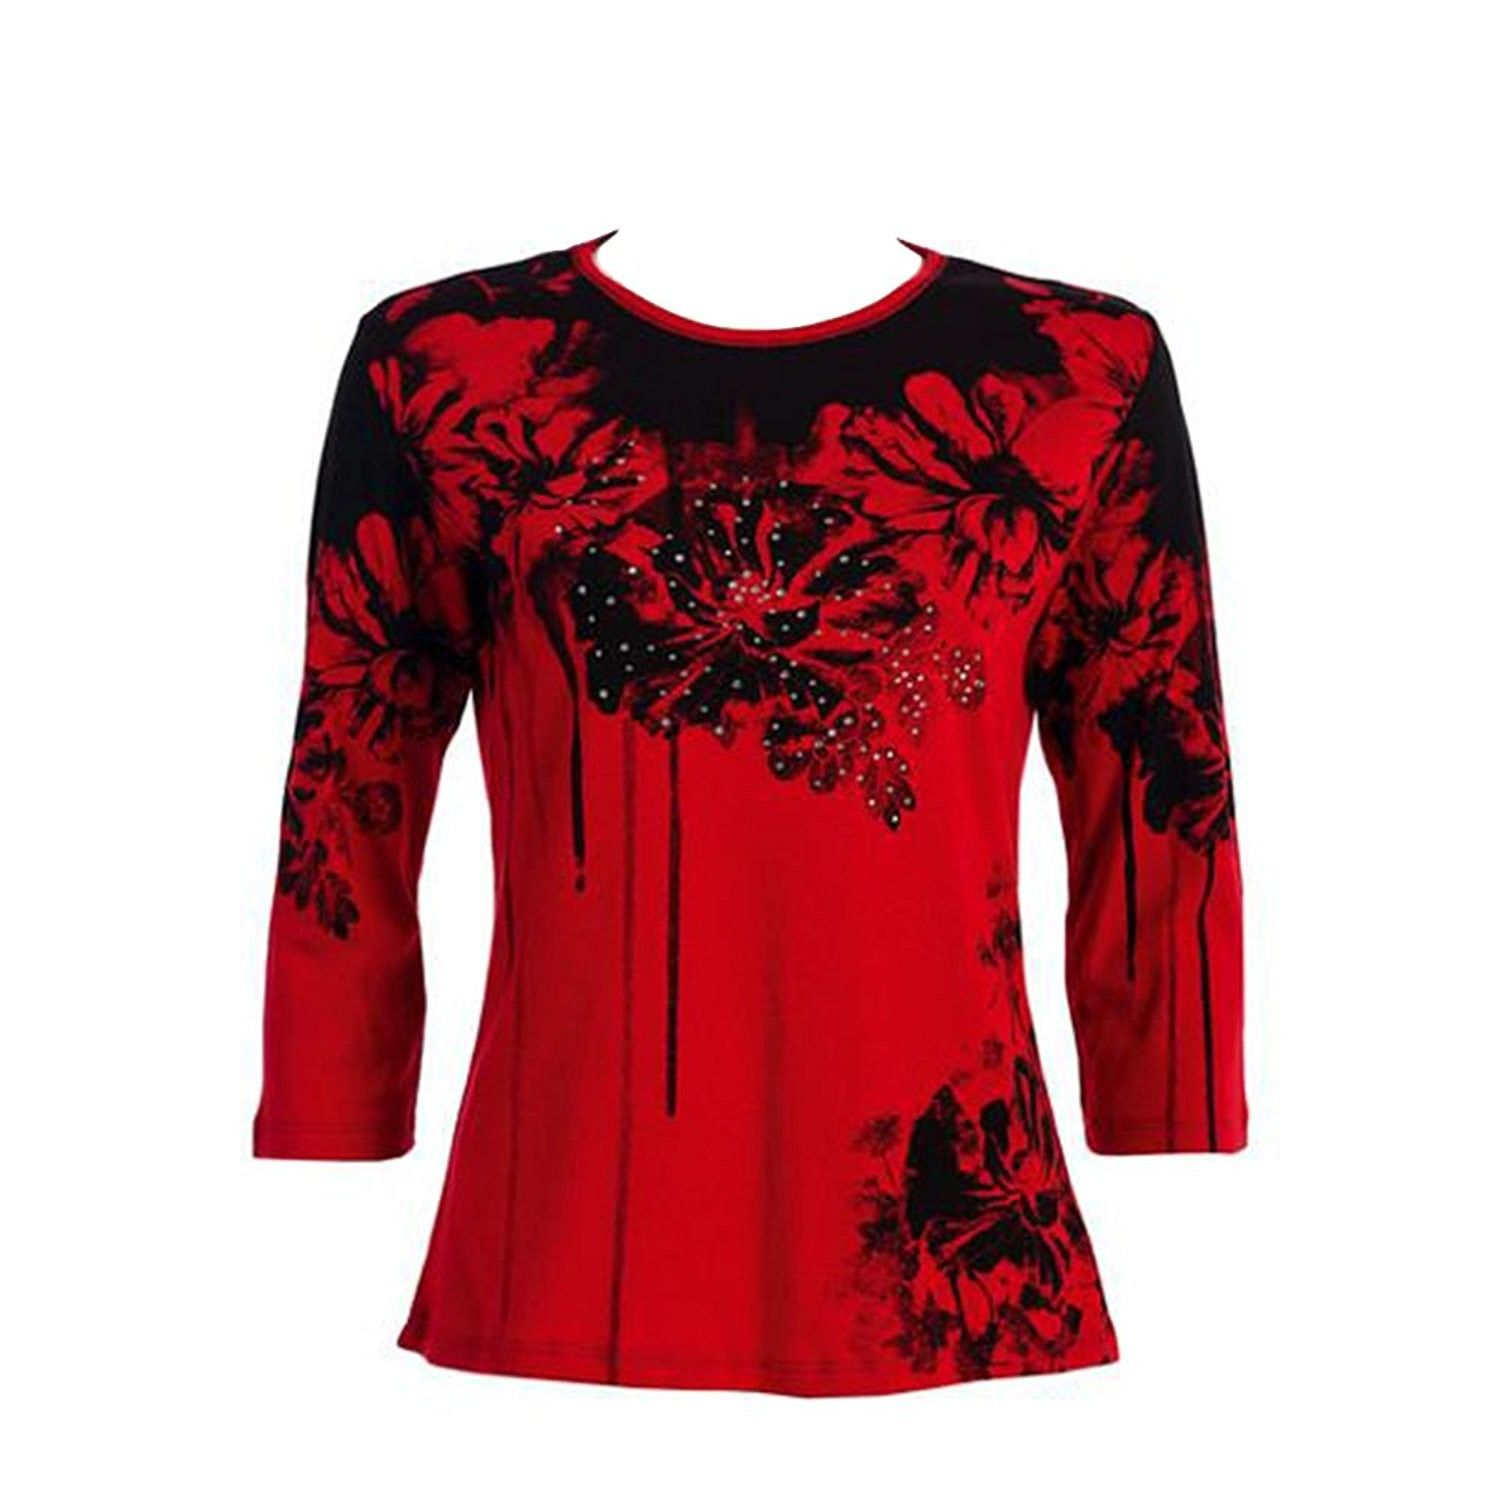 Jess Jane Bouquet Top In Red 14739bk Ci186rs4kl0 In 2018